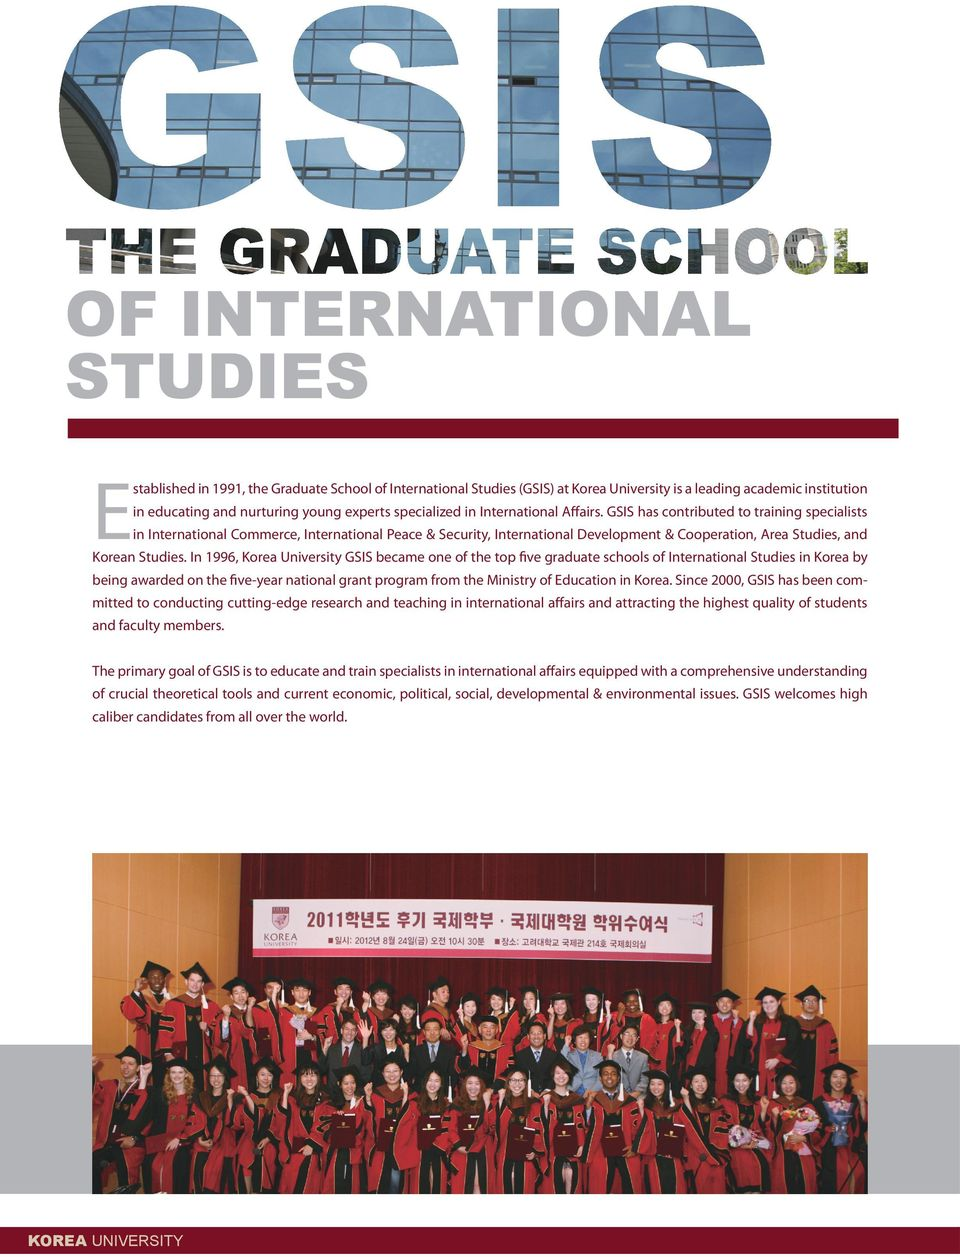 In 1996, Korea University GSIS became one of the top five graduate schools of International Studies in Korea by being awarded on the five-year national grant program from the Ministry of Education in